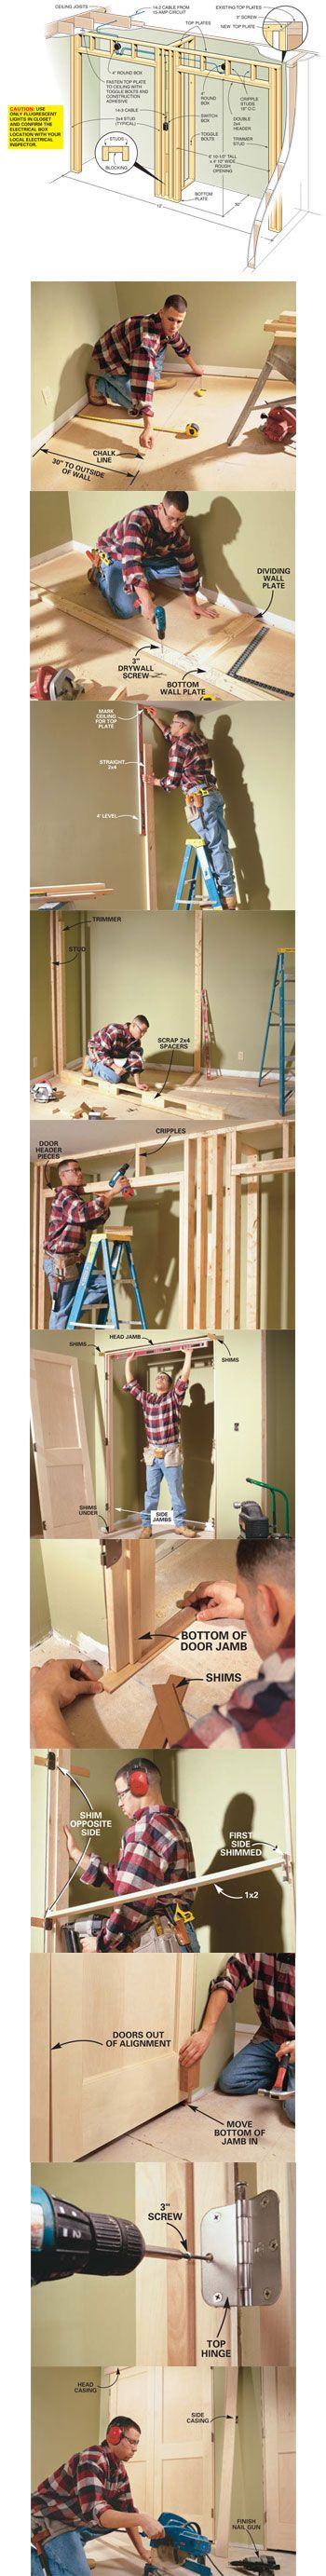 Learn how to build a closet at http://www.familyhandyman.com/DIY-Projects/Indoor-Projects/Bedroom/Closet-Organizer/how-to-build-a-wall-to-wall-closet/View-All